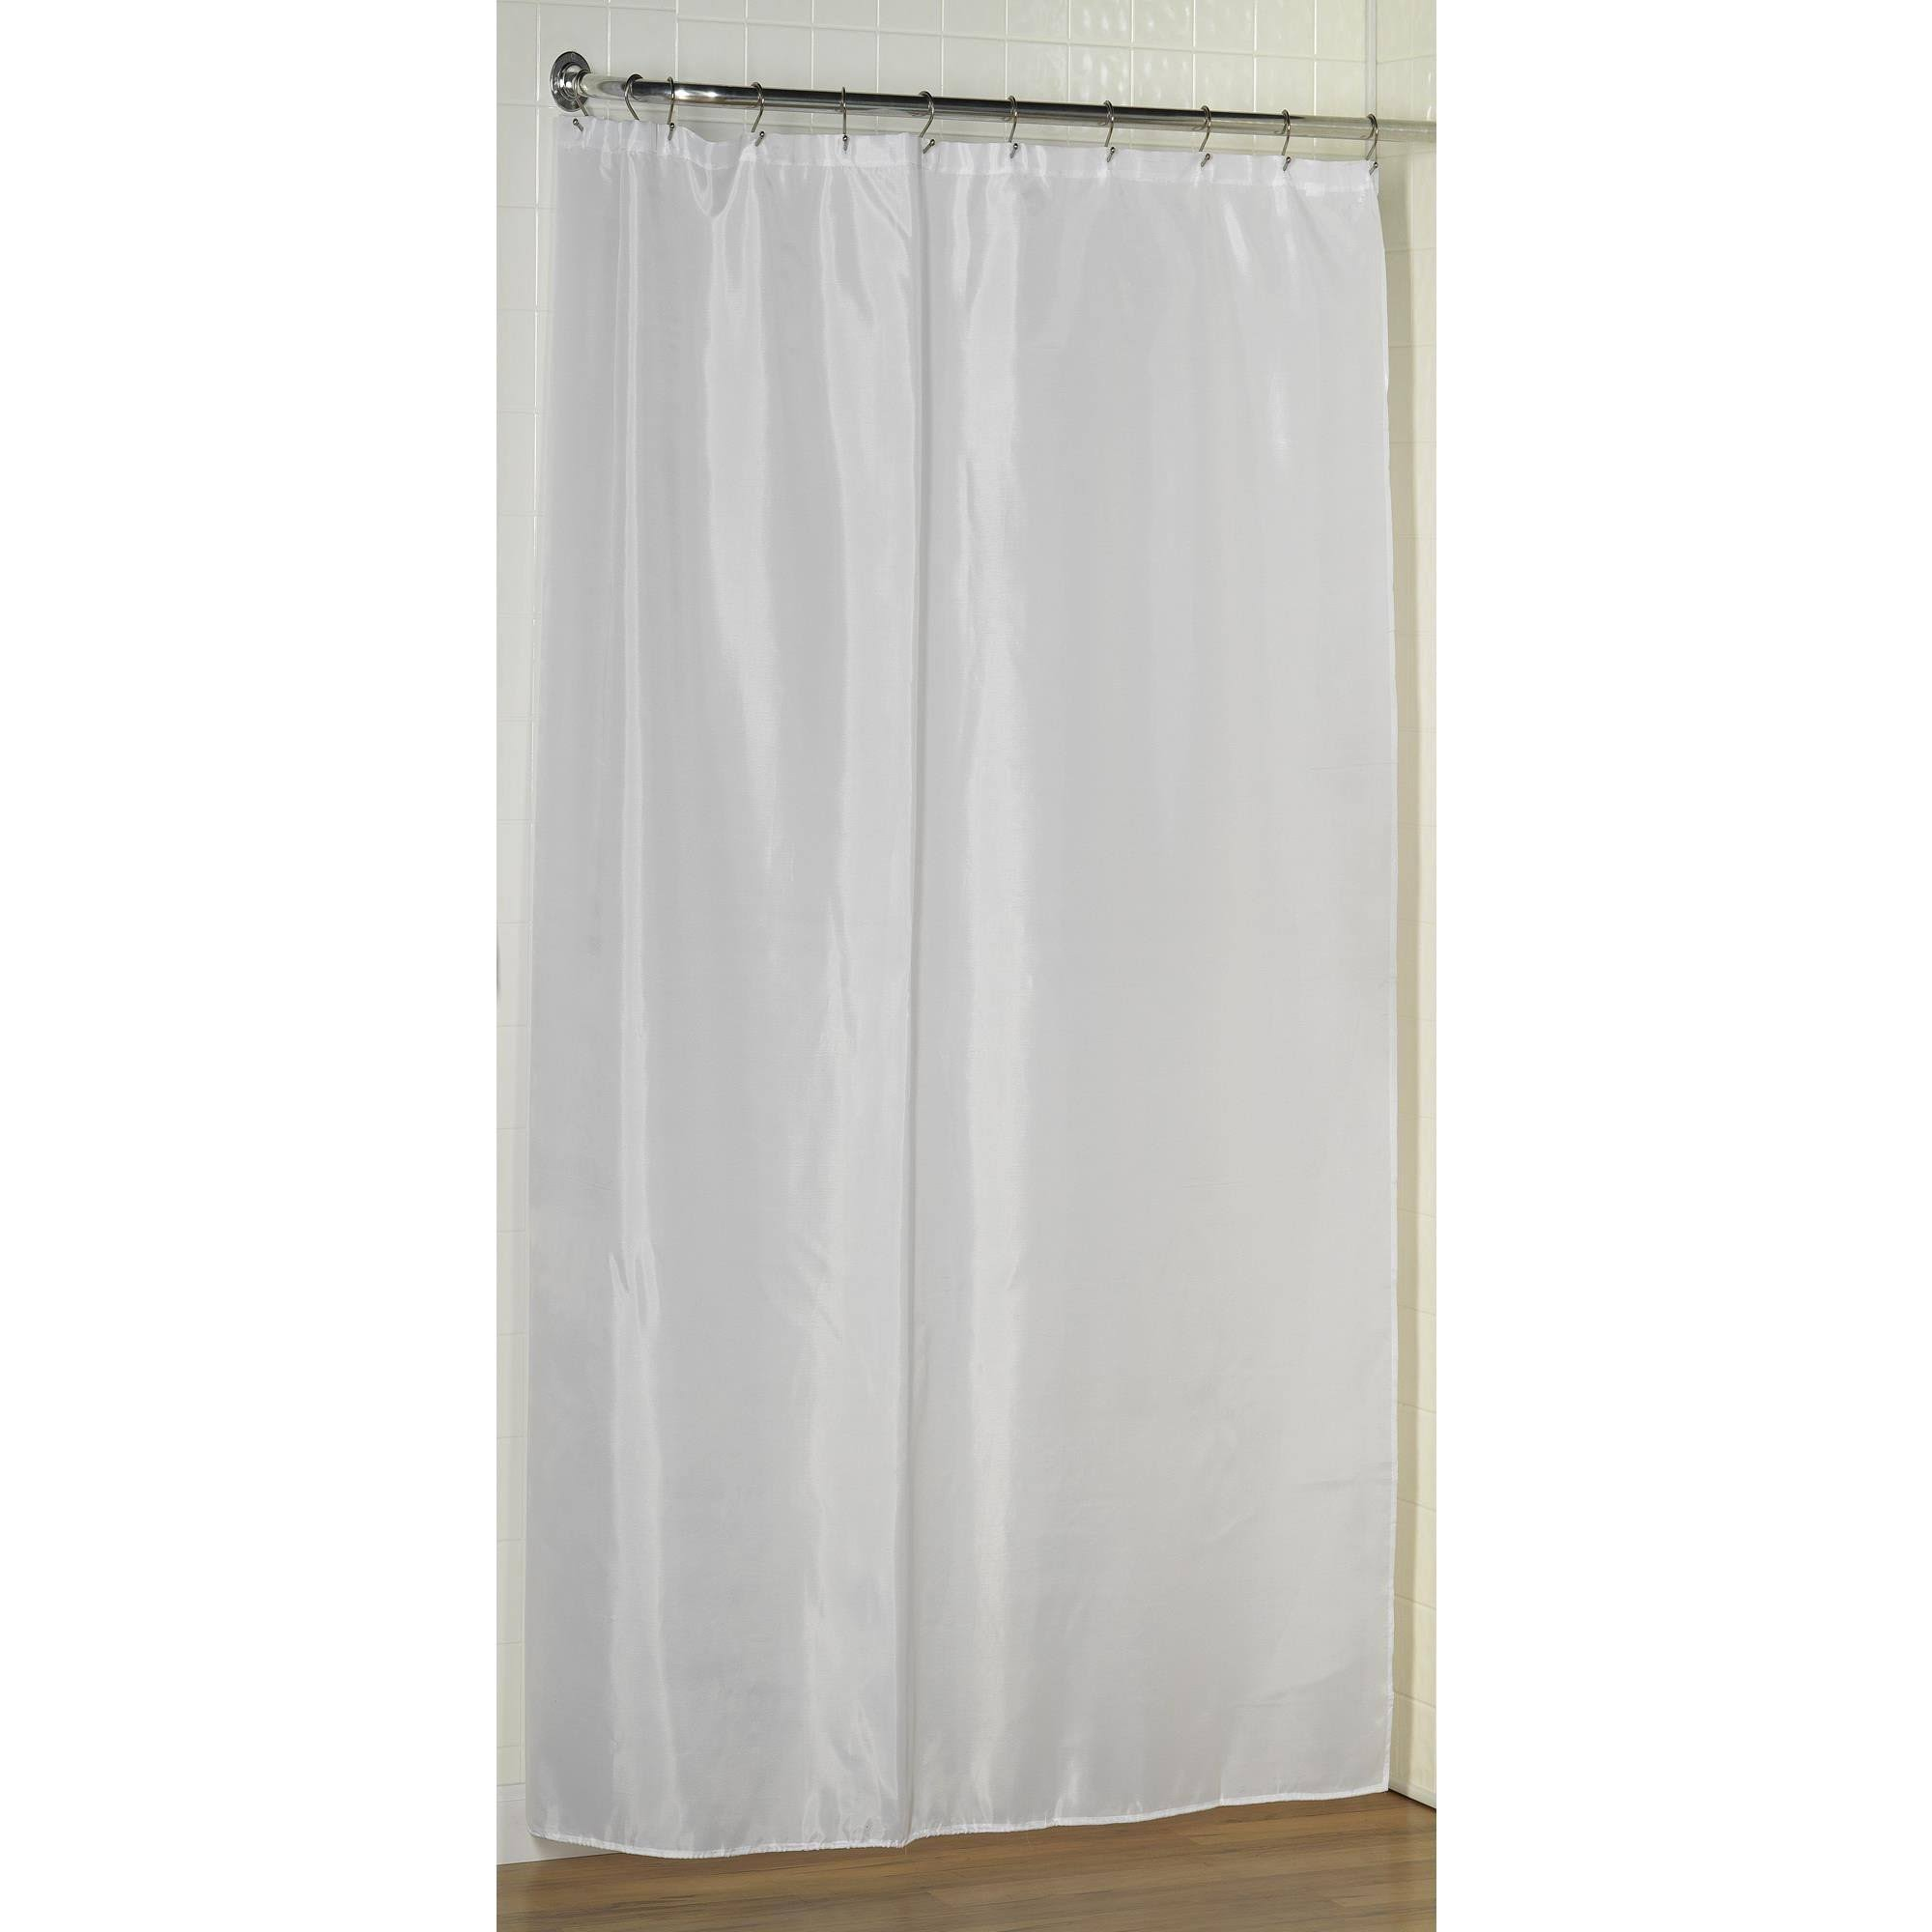 Carnation Home Fashions Shower Stall-Sized Polyester Shower Curtain Liner White